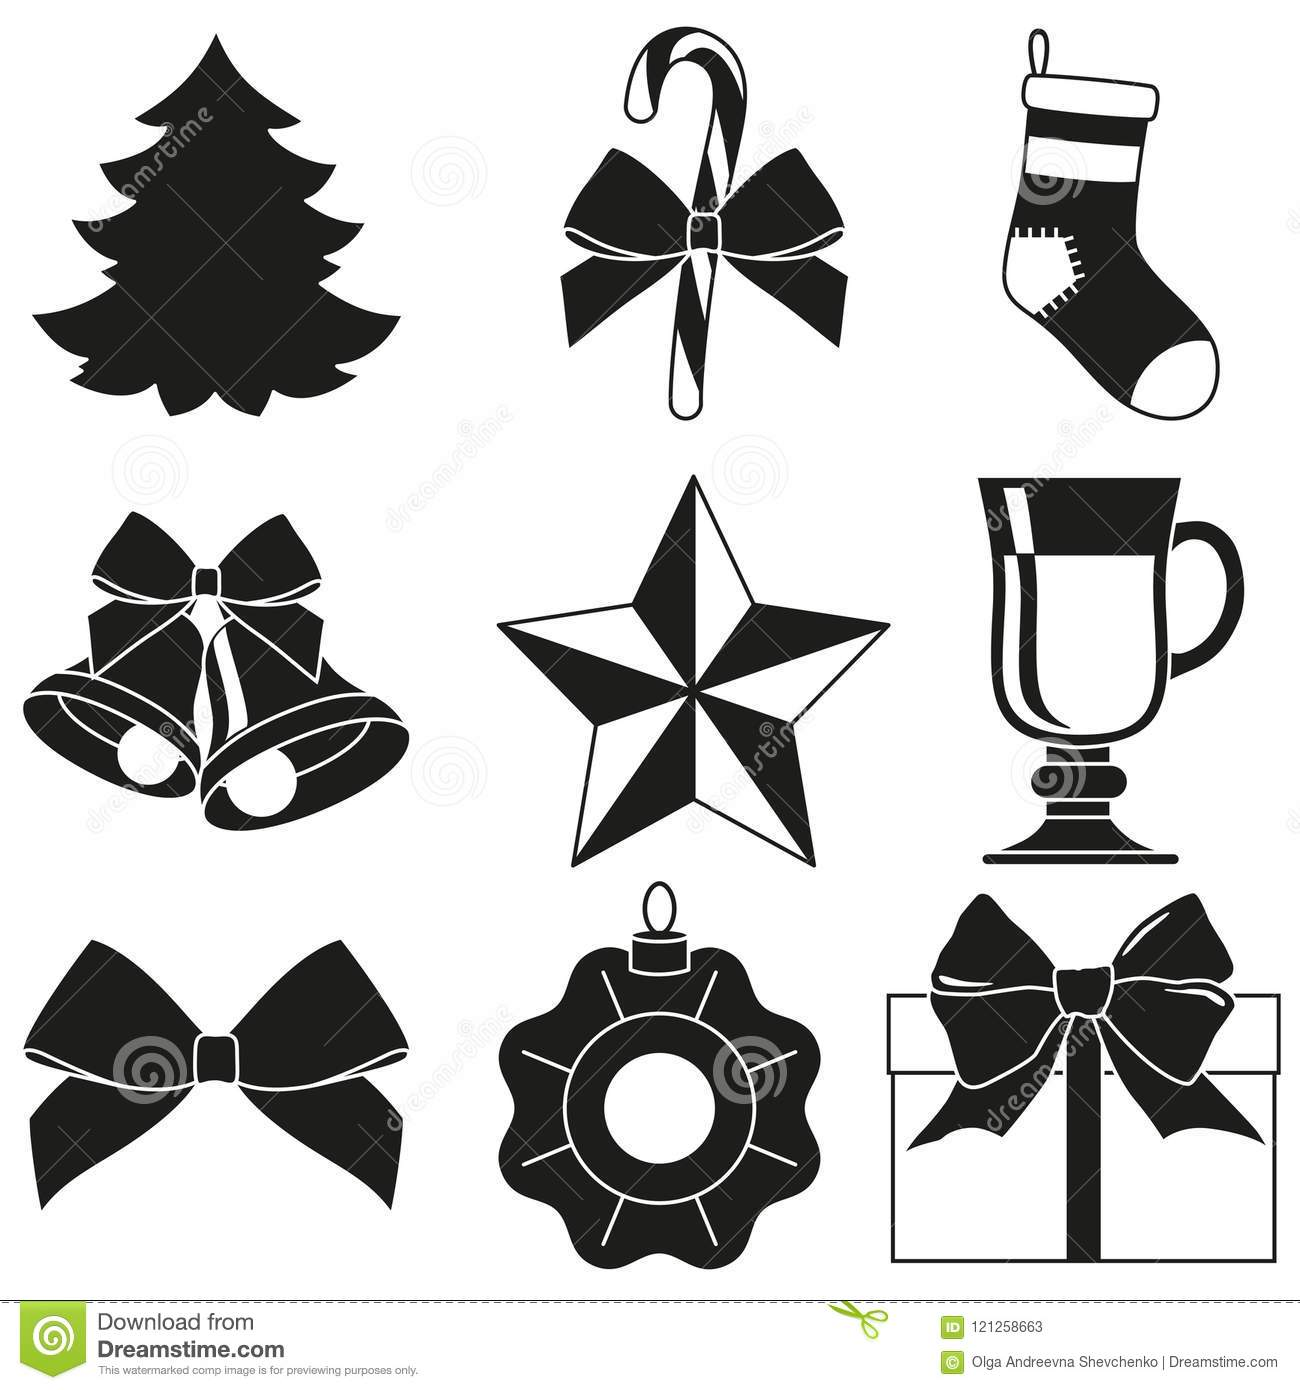 black and white 9 new year elements silhouette set